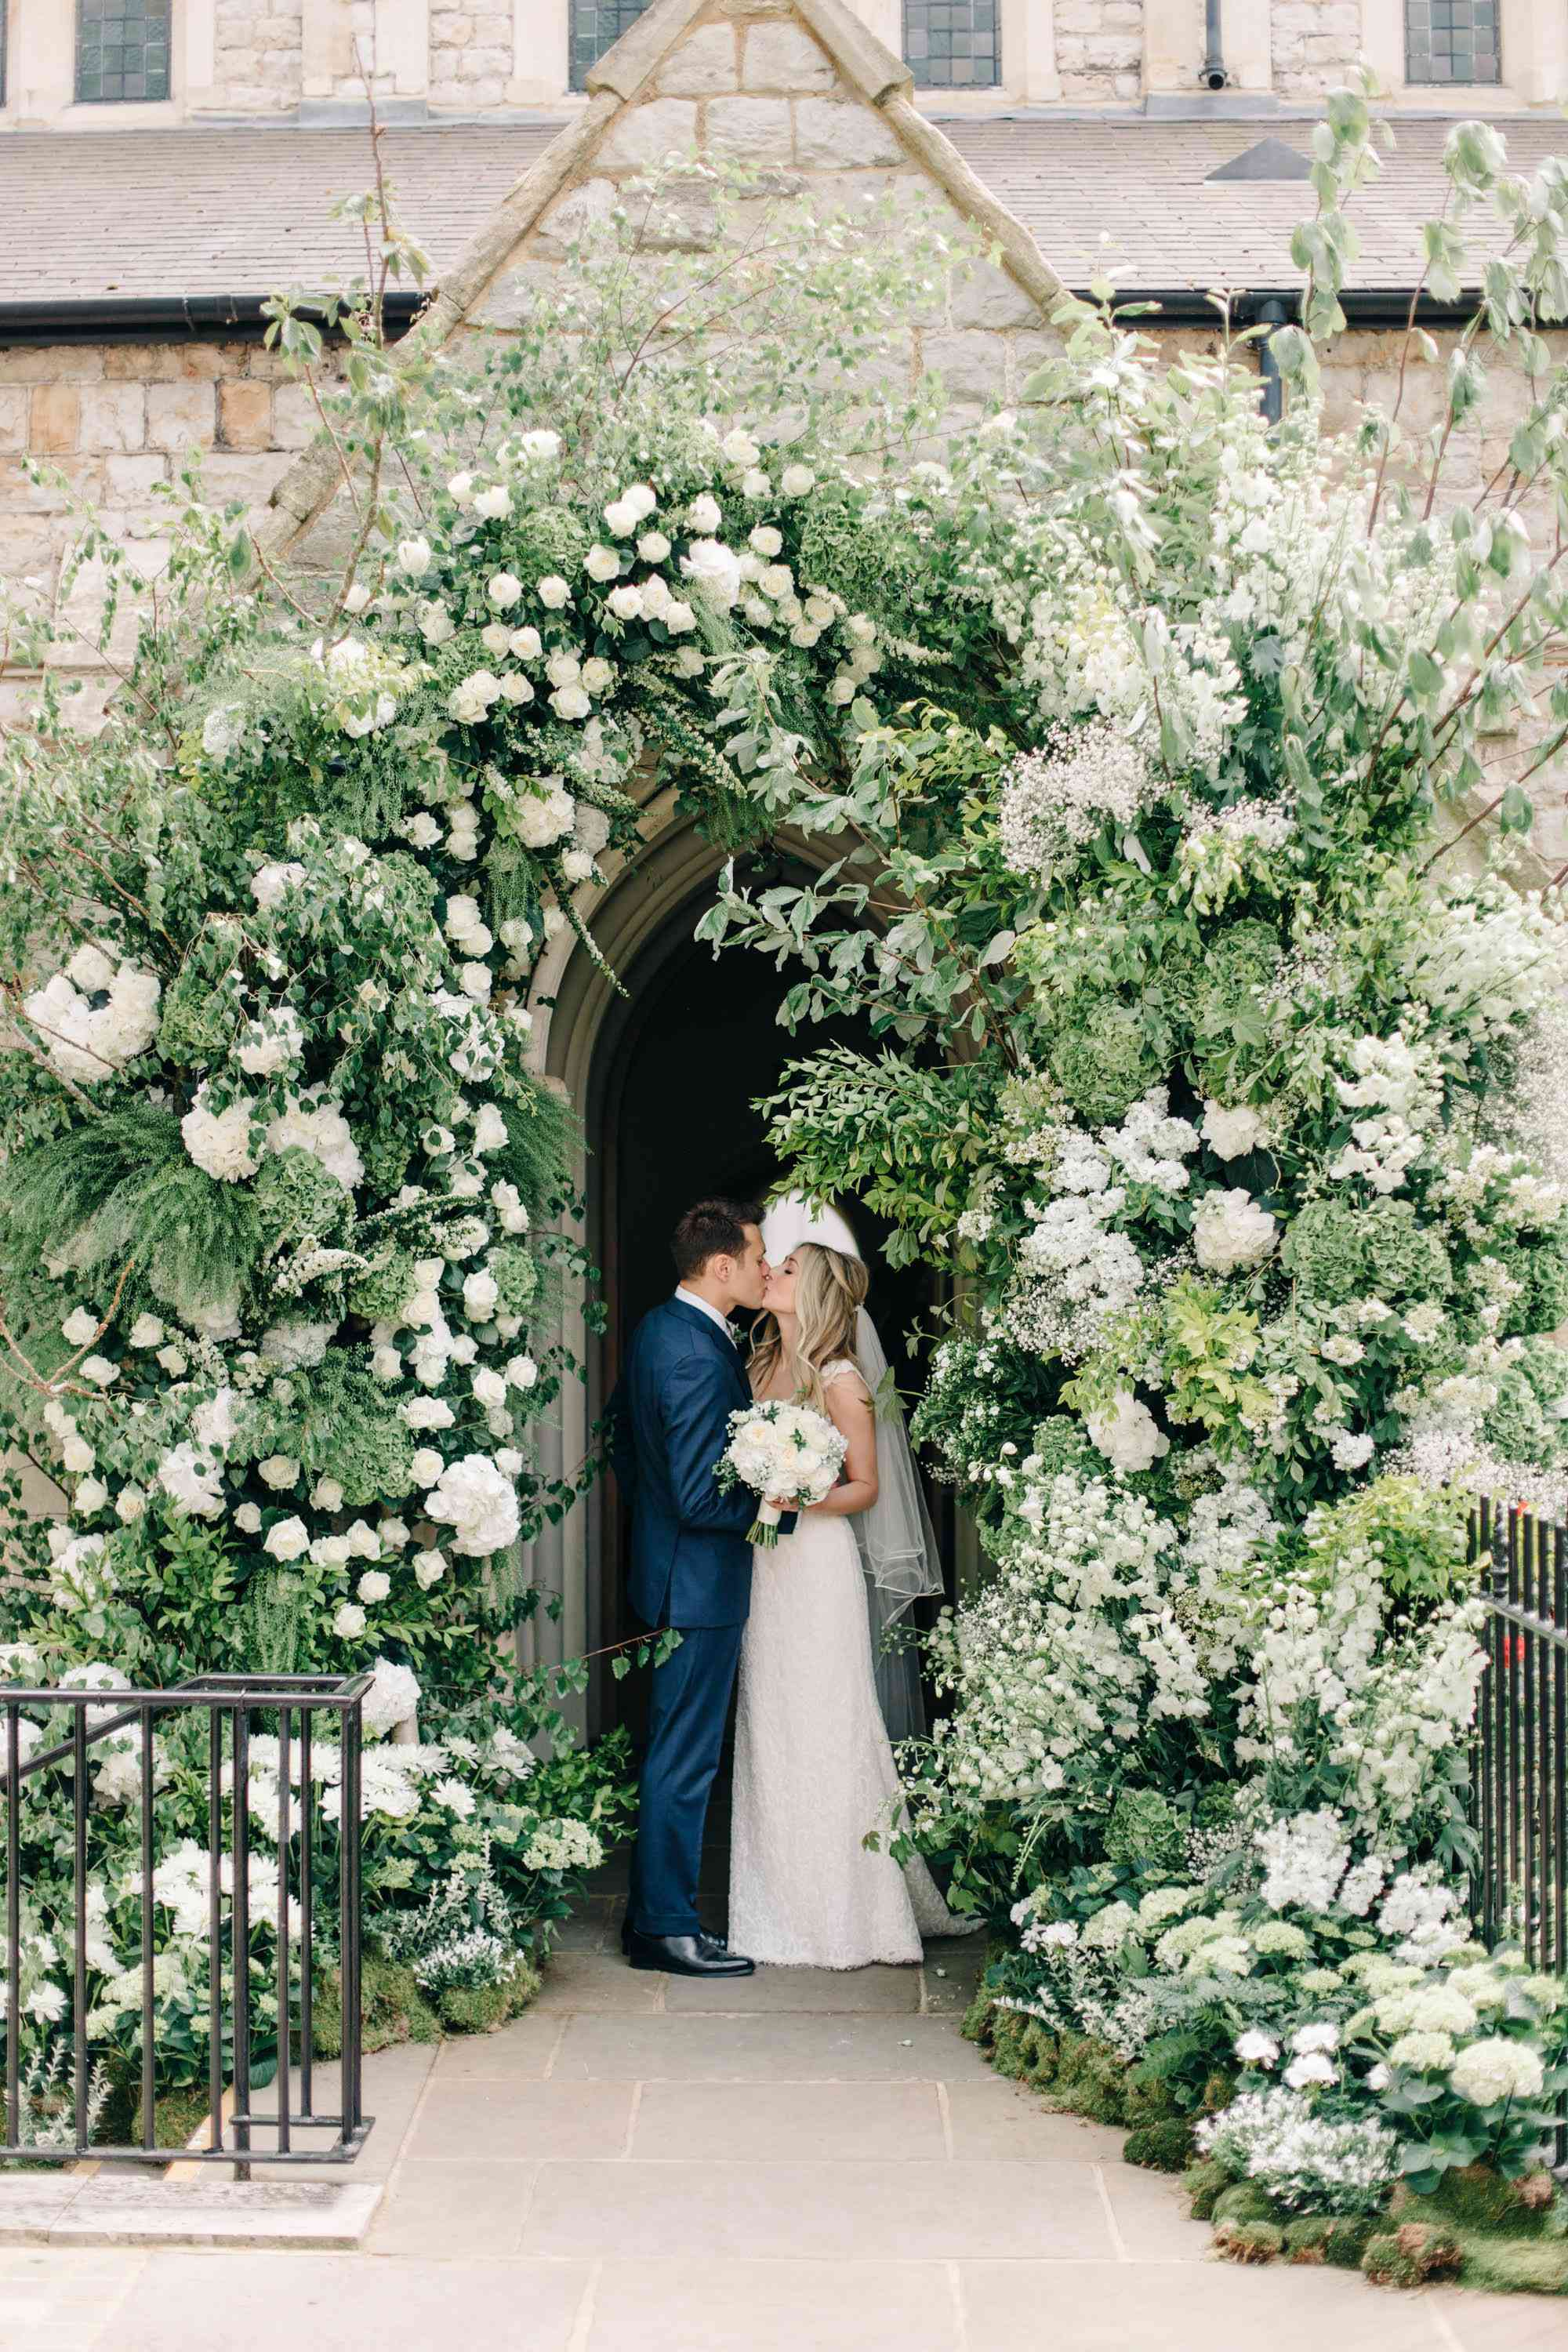 Bride and groom kissing under a floral decorated entryway